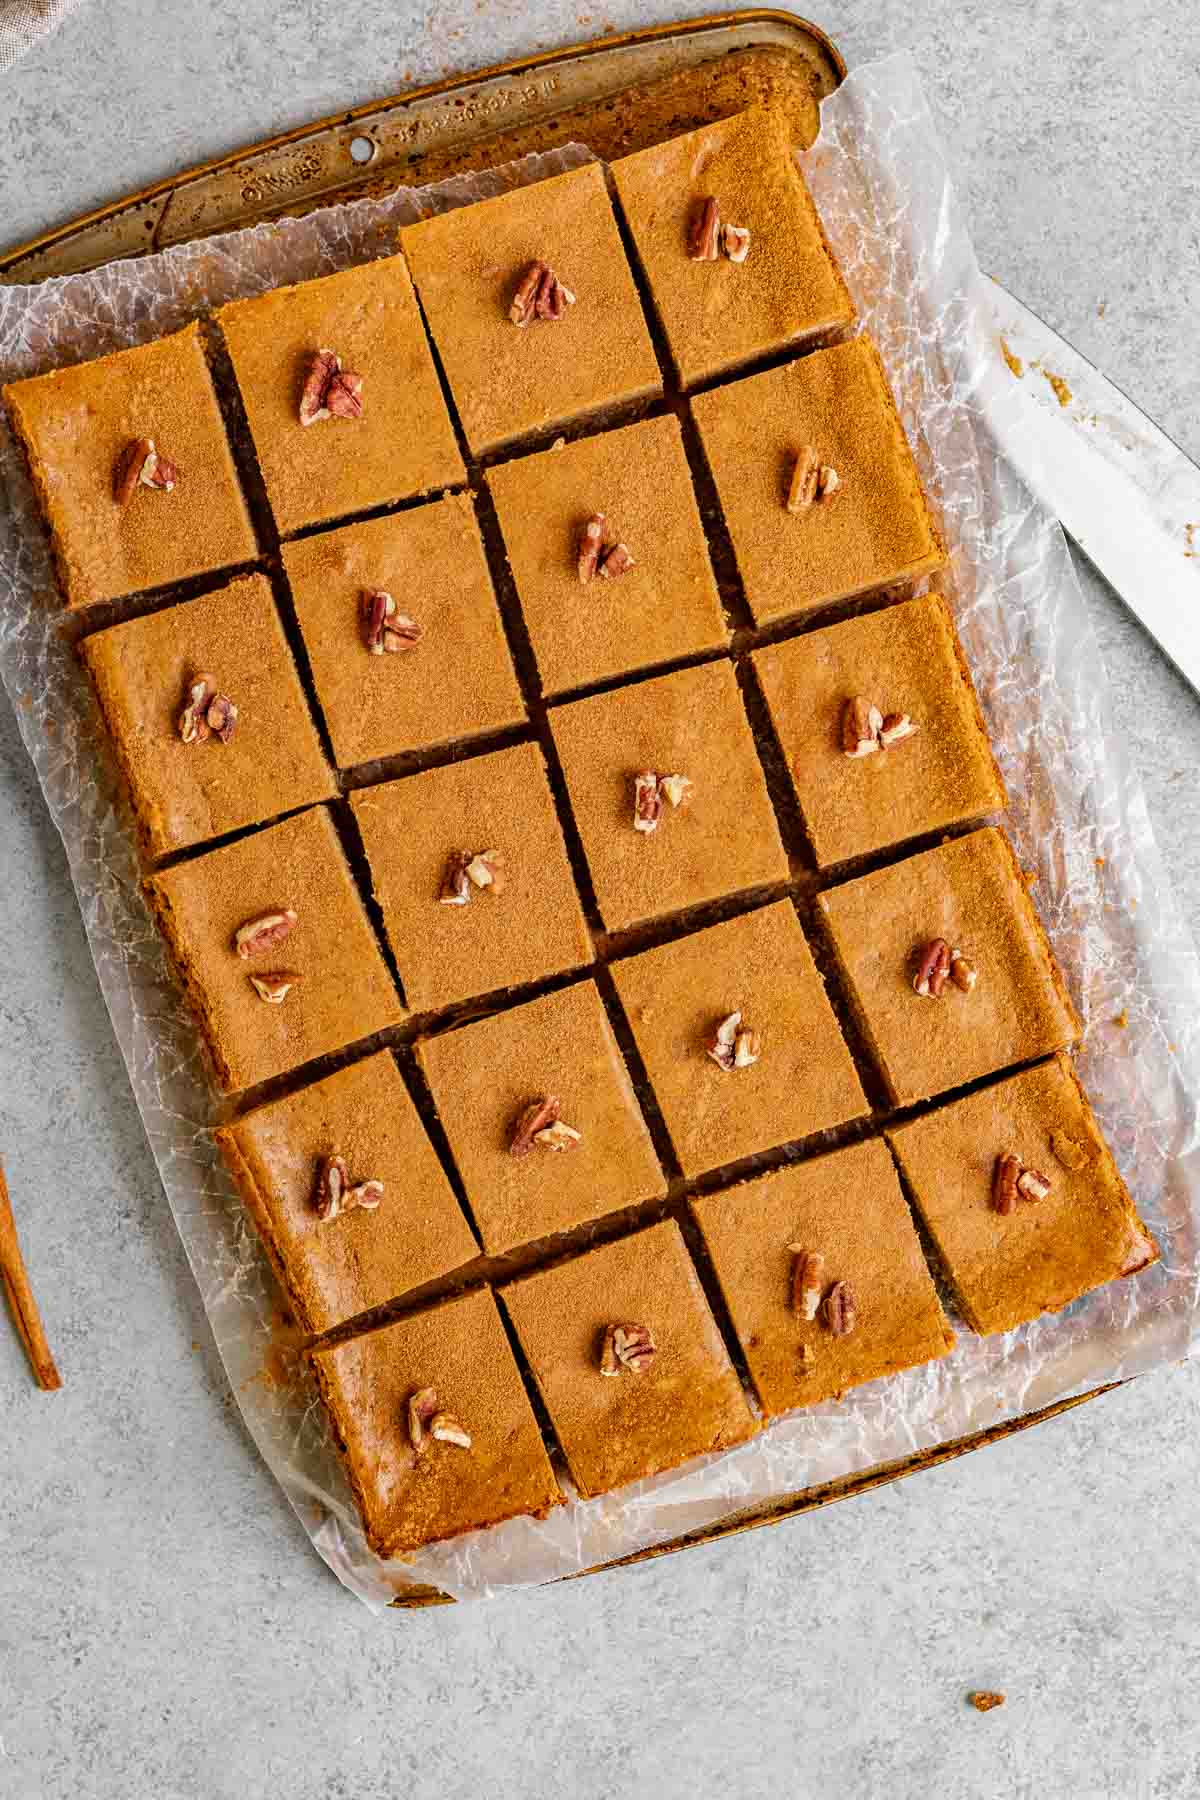 Gingerbread Cheesecake Bars sliced on a board with parchment